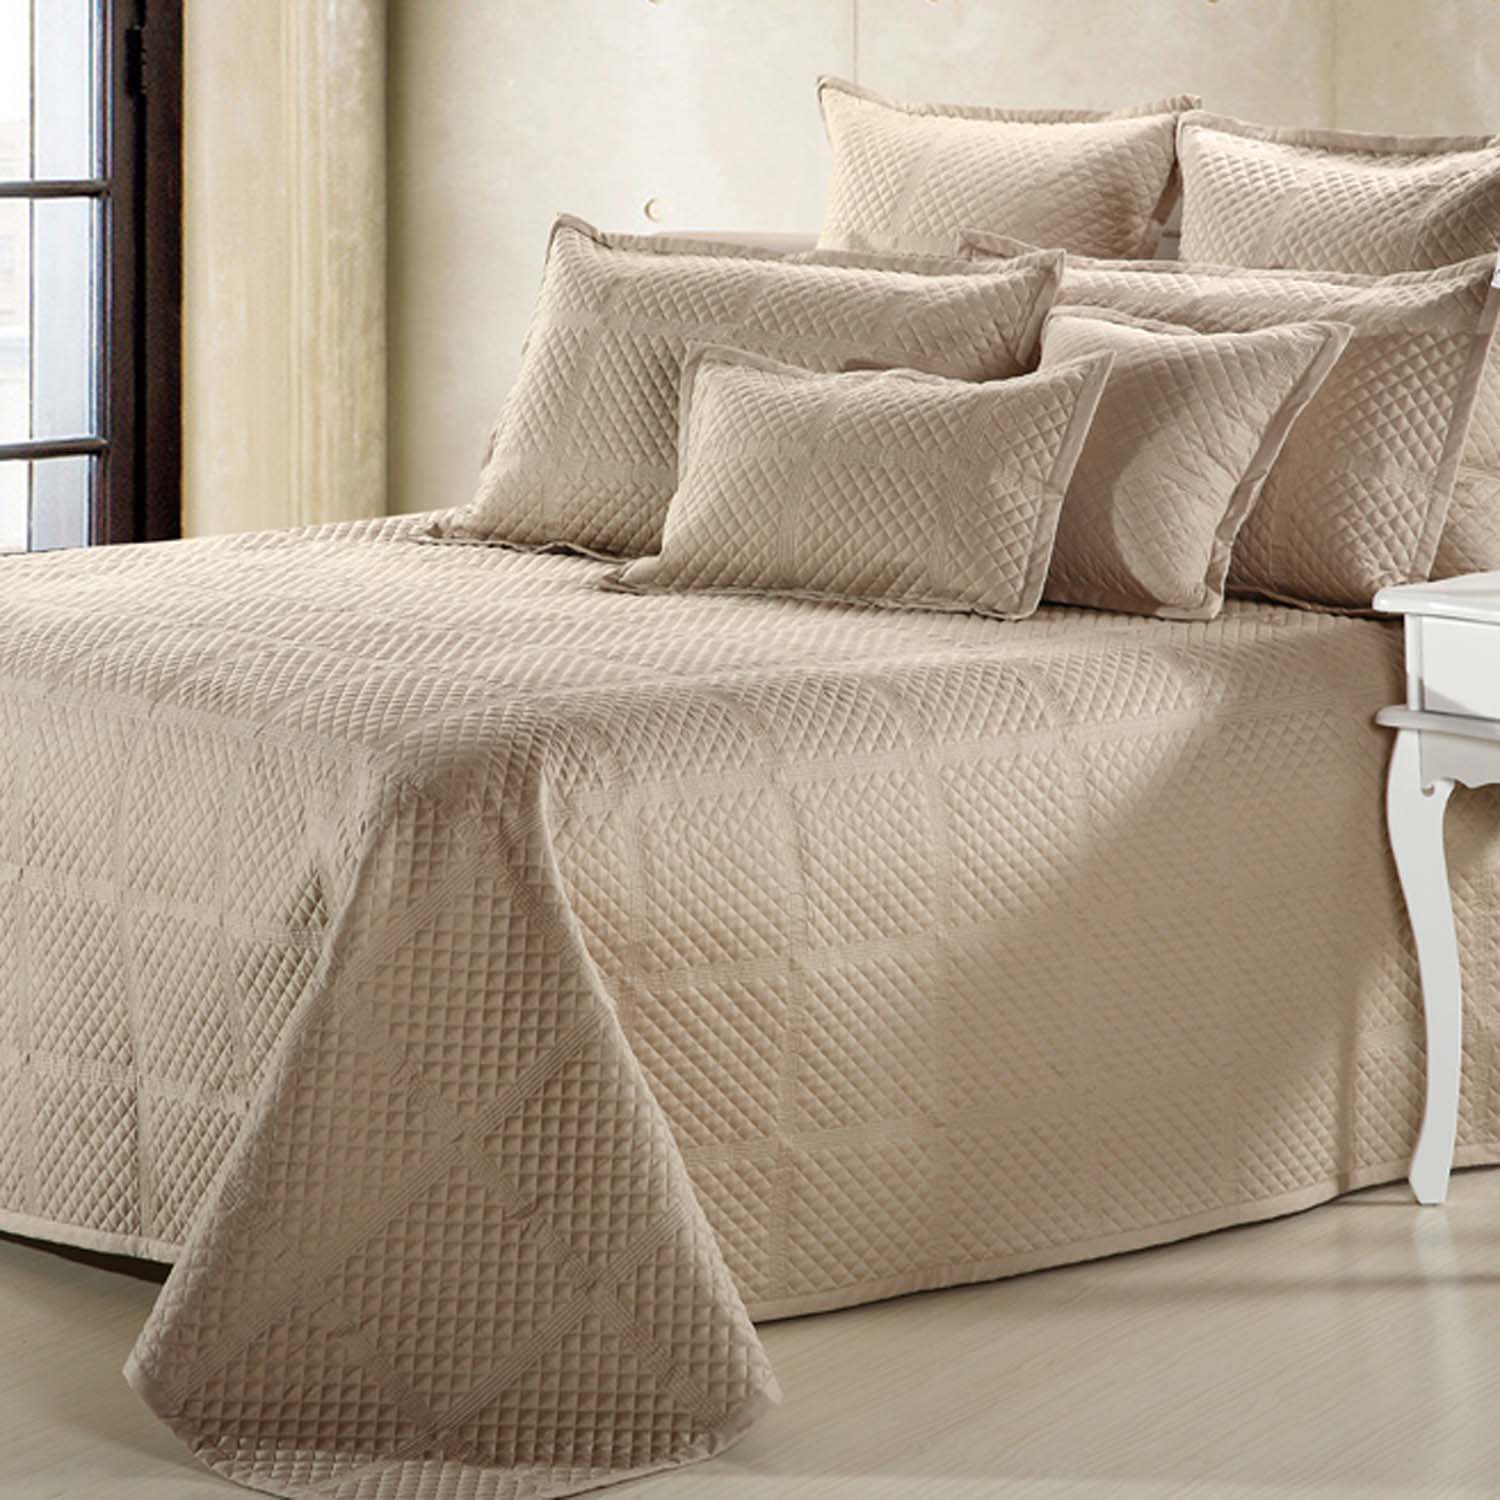 Excellent coverlets for fantastic bedroom ideas with matelasse coverlet